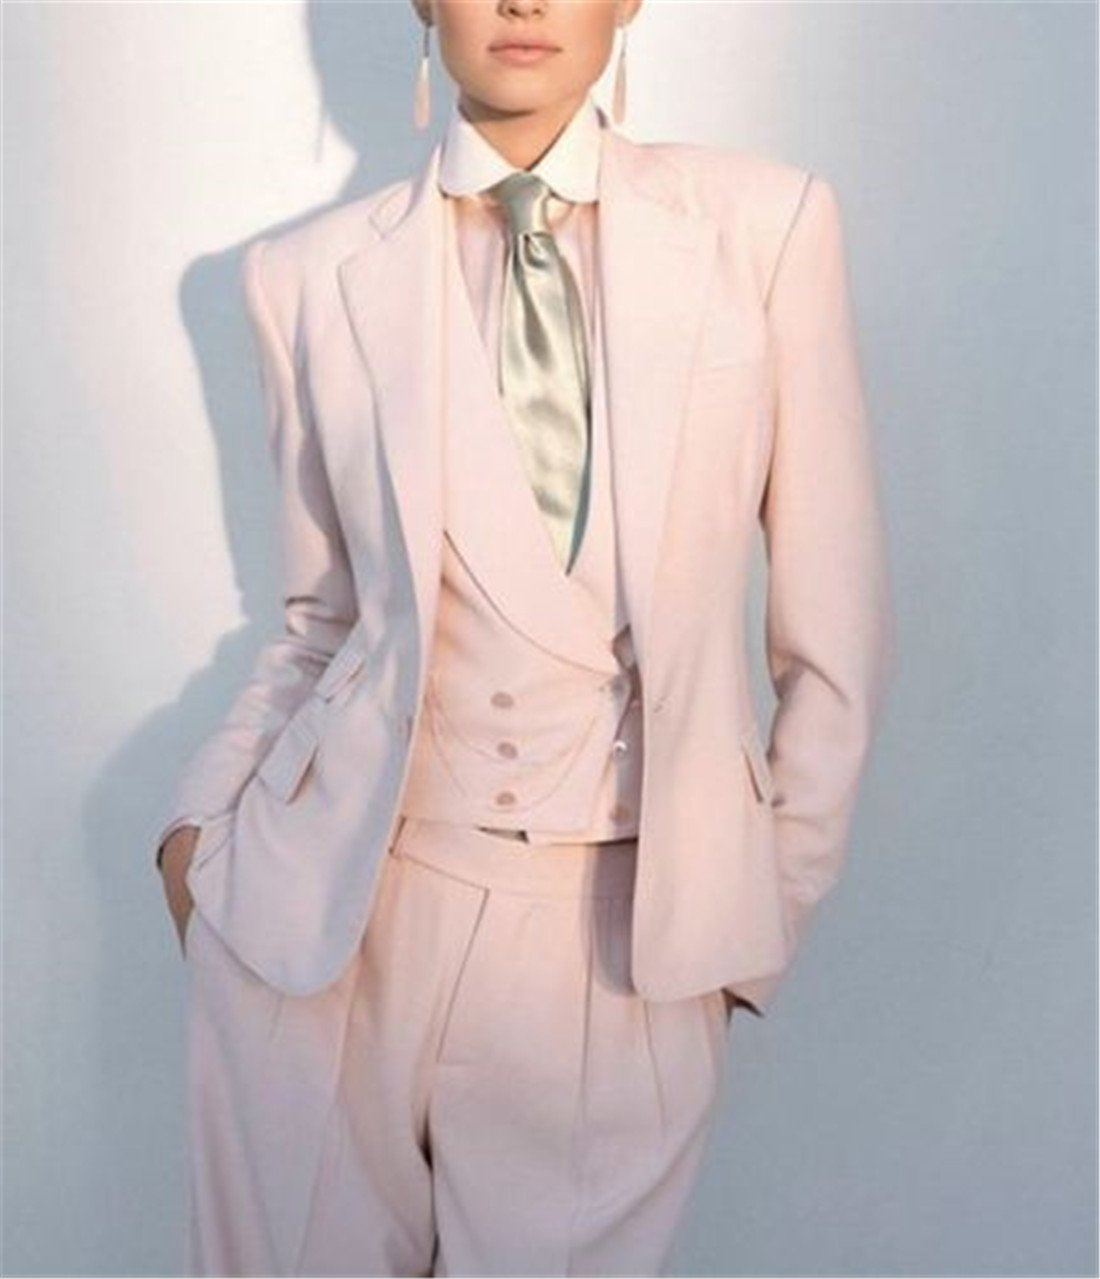 Silver Moonlight Women's Novelty 2 Button White Pant Suit (2XL) by Silver Moonlight (Image #2)